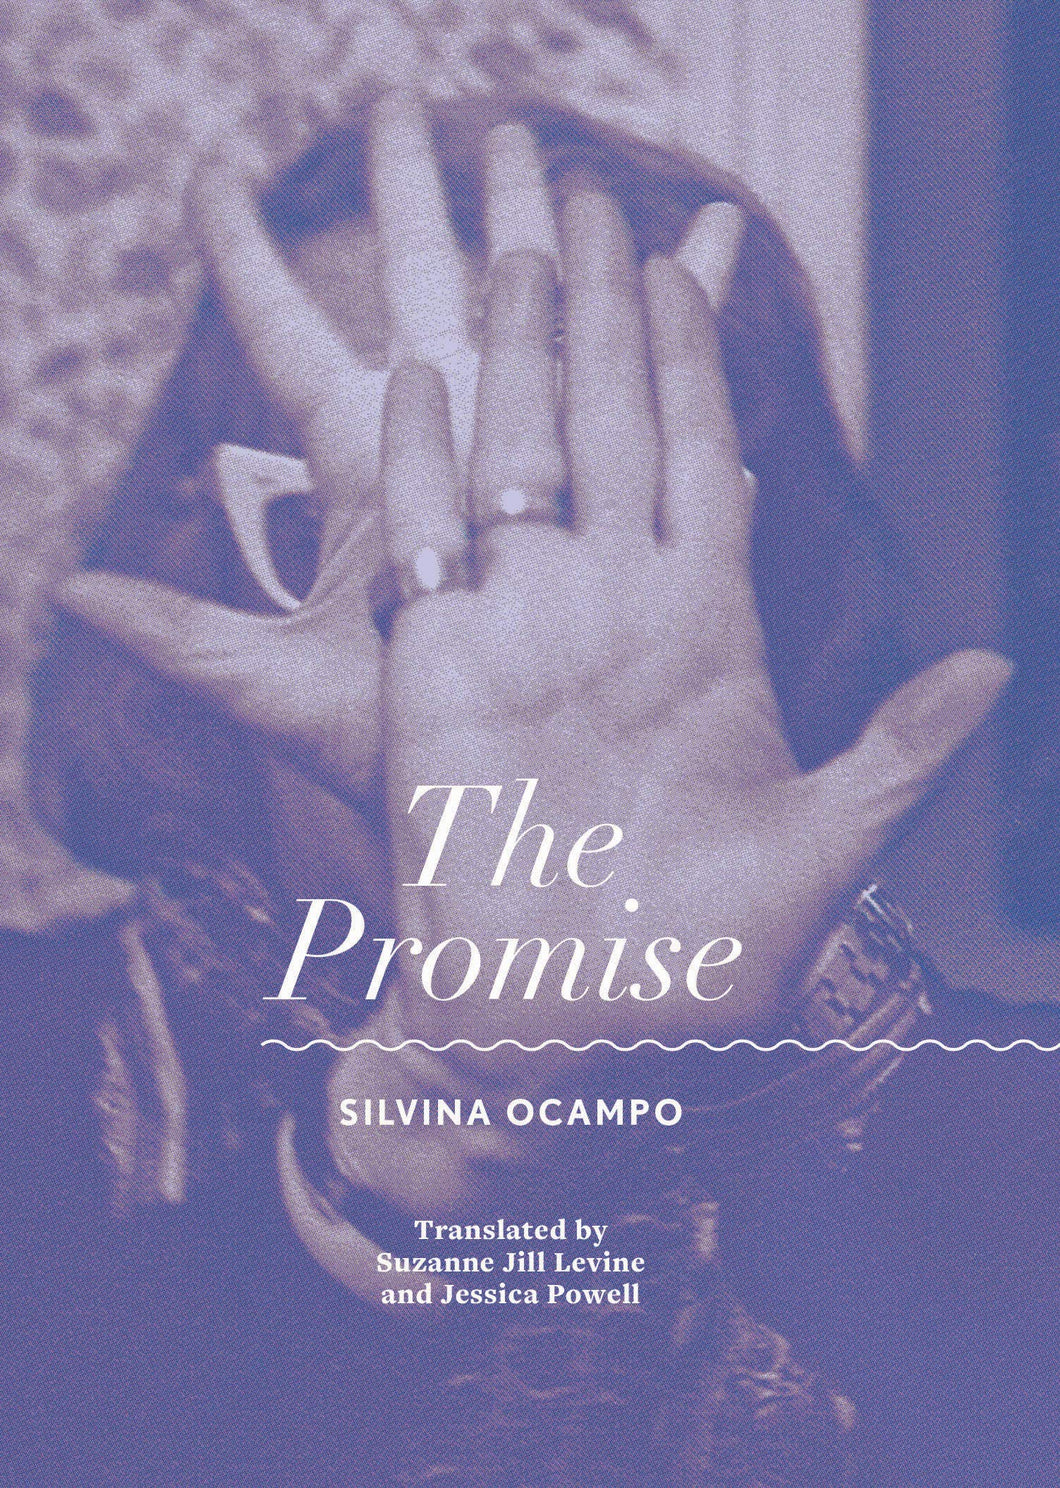 The Promise by Silvina Ocampo